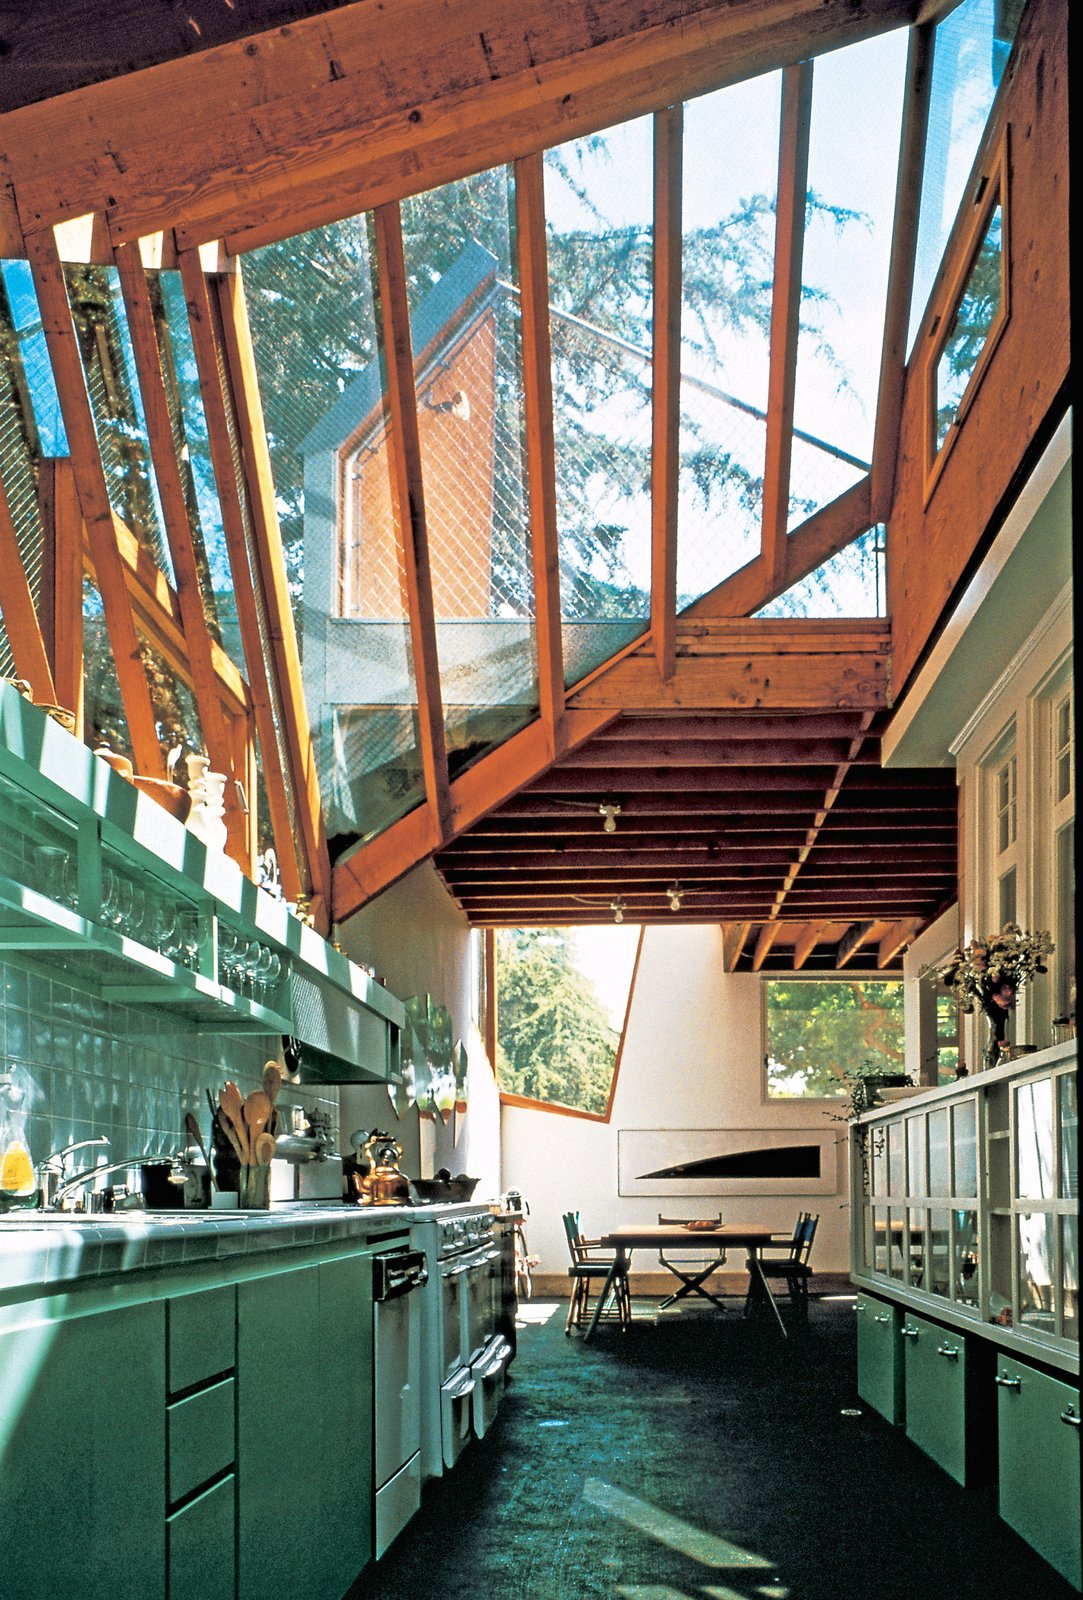 Originally built in 1920 and purchased by Gehry in 1977, the Gehry House features a metallic exterior wrapped around the original building that leaves many of the original details visible. Tagged: Kitchen and Subway Tile Backsplashe.  Photo 1 of 14 in 13 Iconic Buildings Designed by Frank Gehry